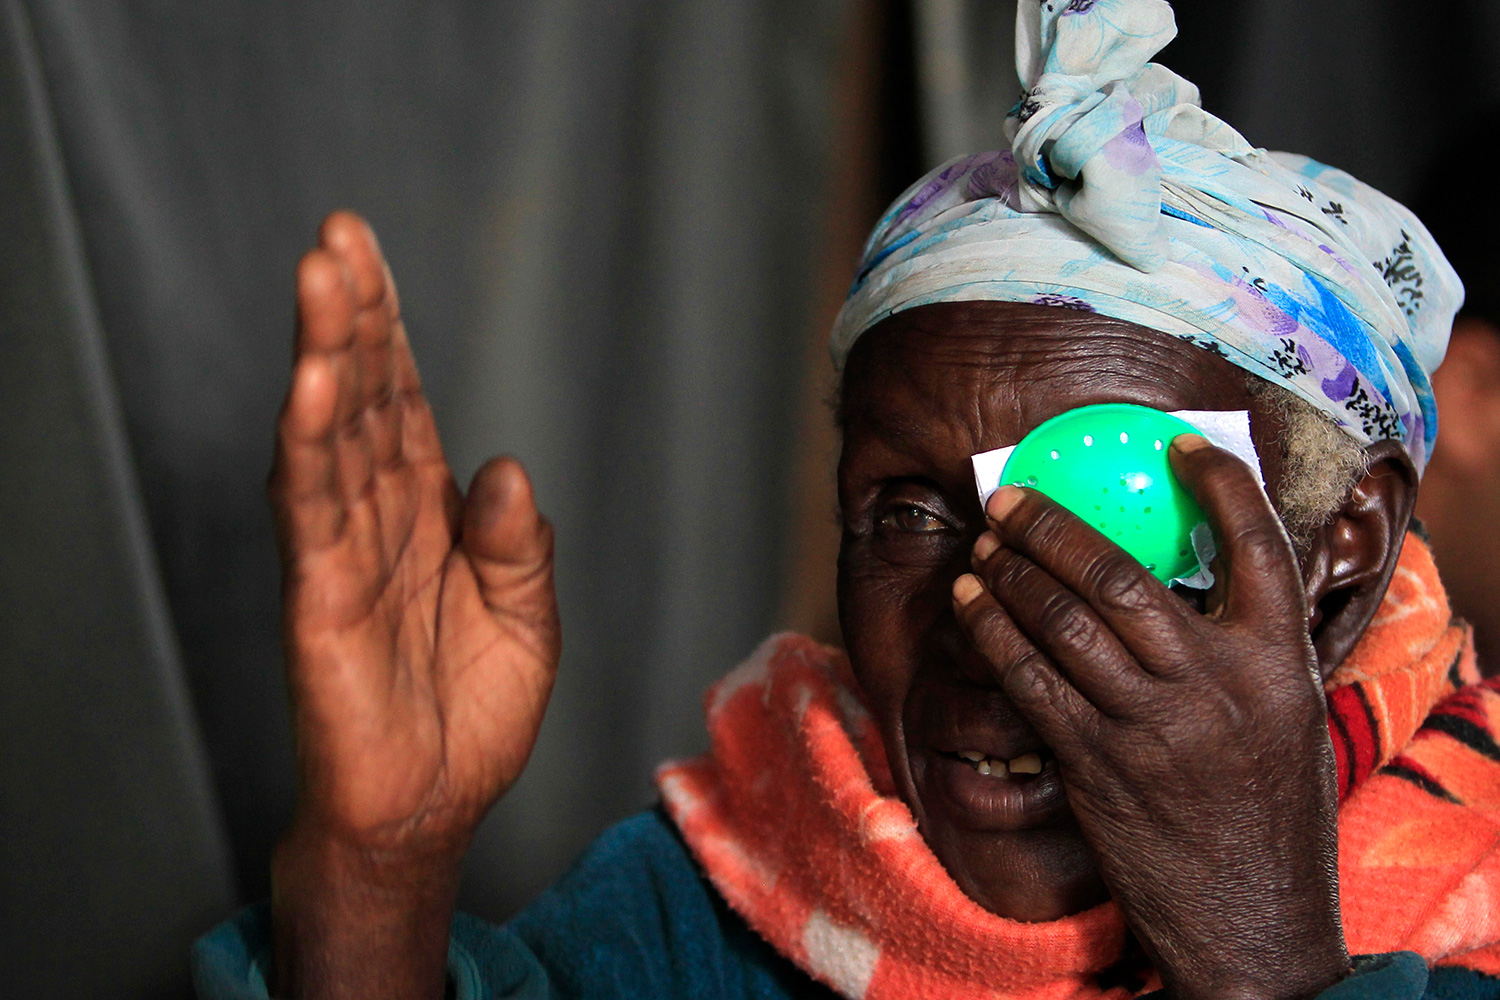 The photo shows a mature woman wearing a bright orange scarf taking an eye test, holding a green patch to her left eye and raising her right hand in front of her face.